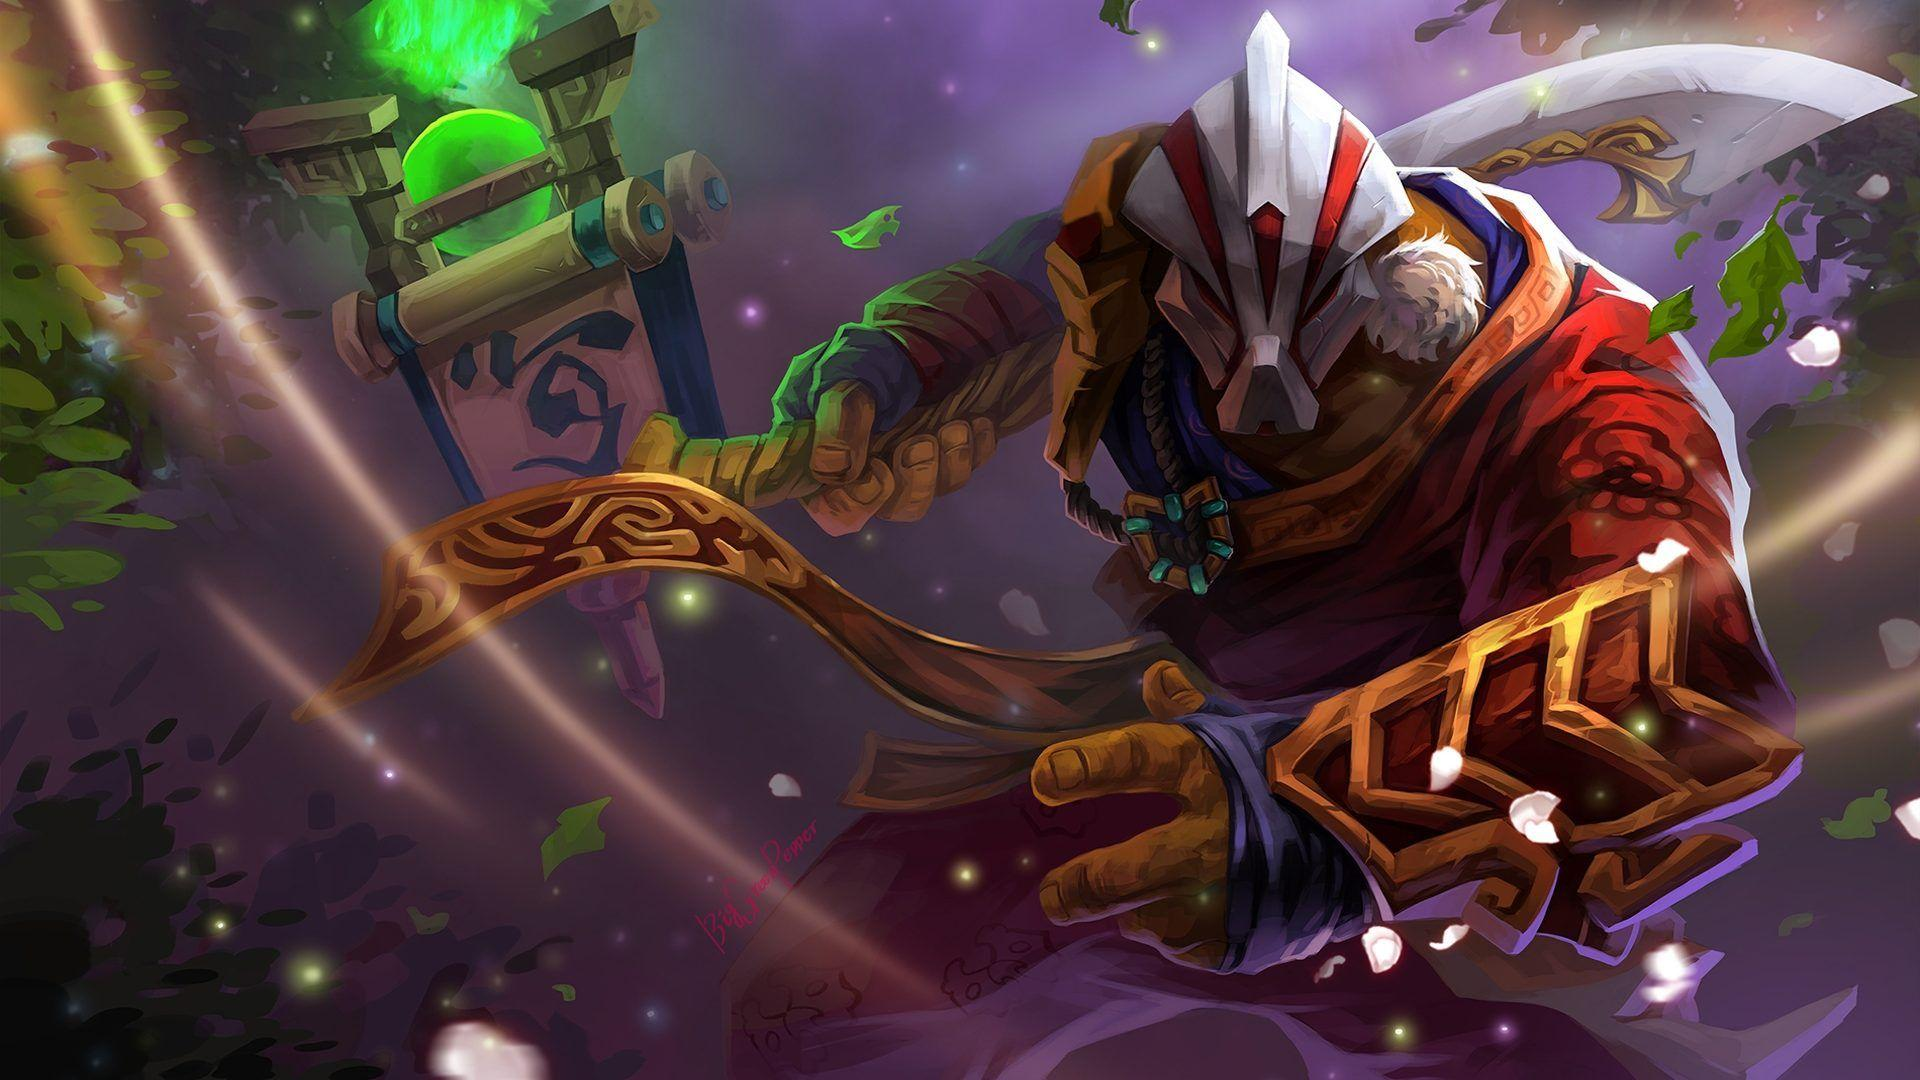 Dota 2 Fanart Wallpapers Hd Juggernaut Arcana 1920x1200 ...